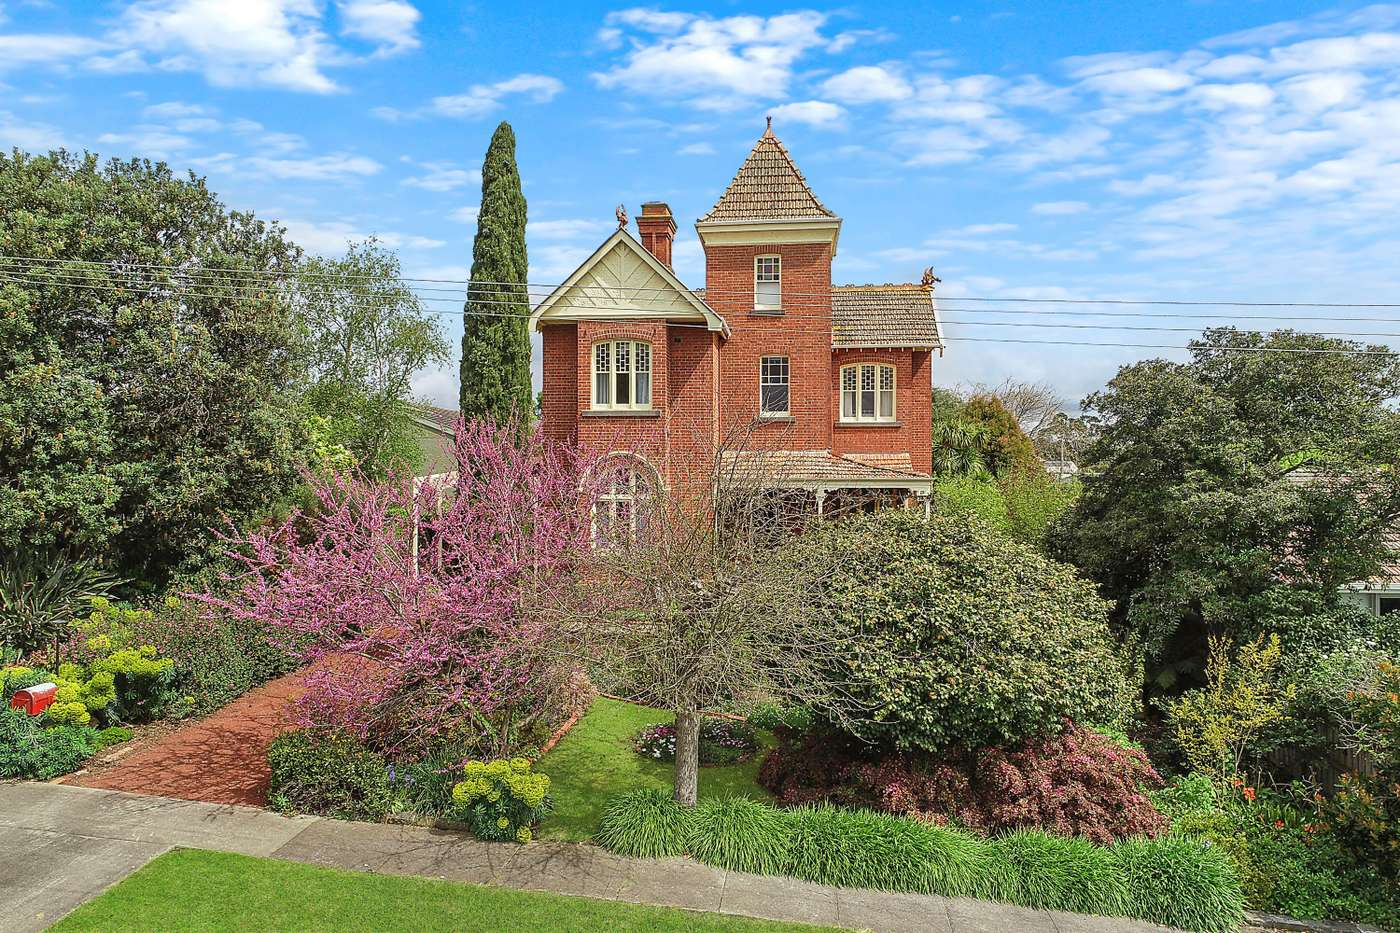 Main view of Homely house listing, 9 Campbell Street, Camperdown, VIC 3260